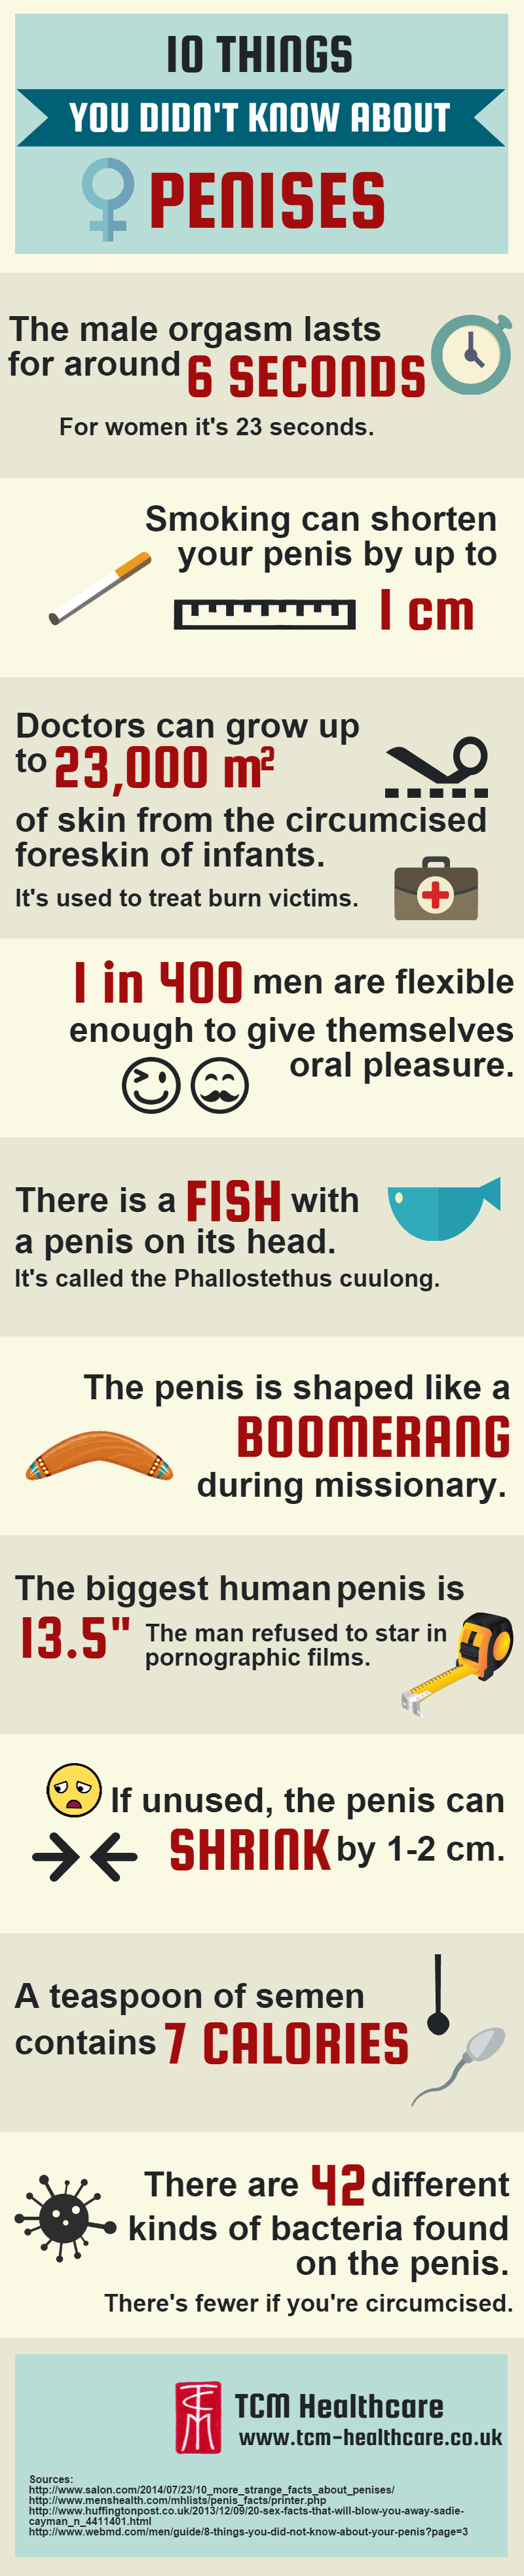 10 things you didn't know about penises